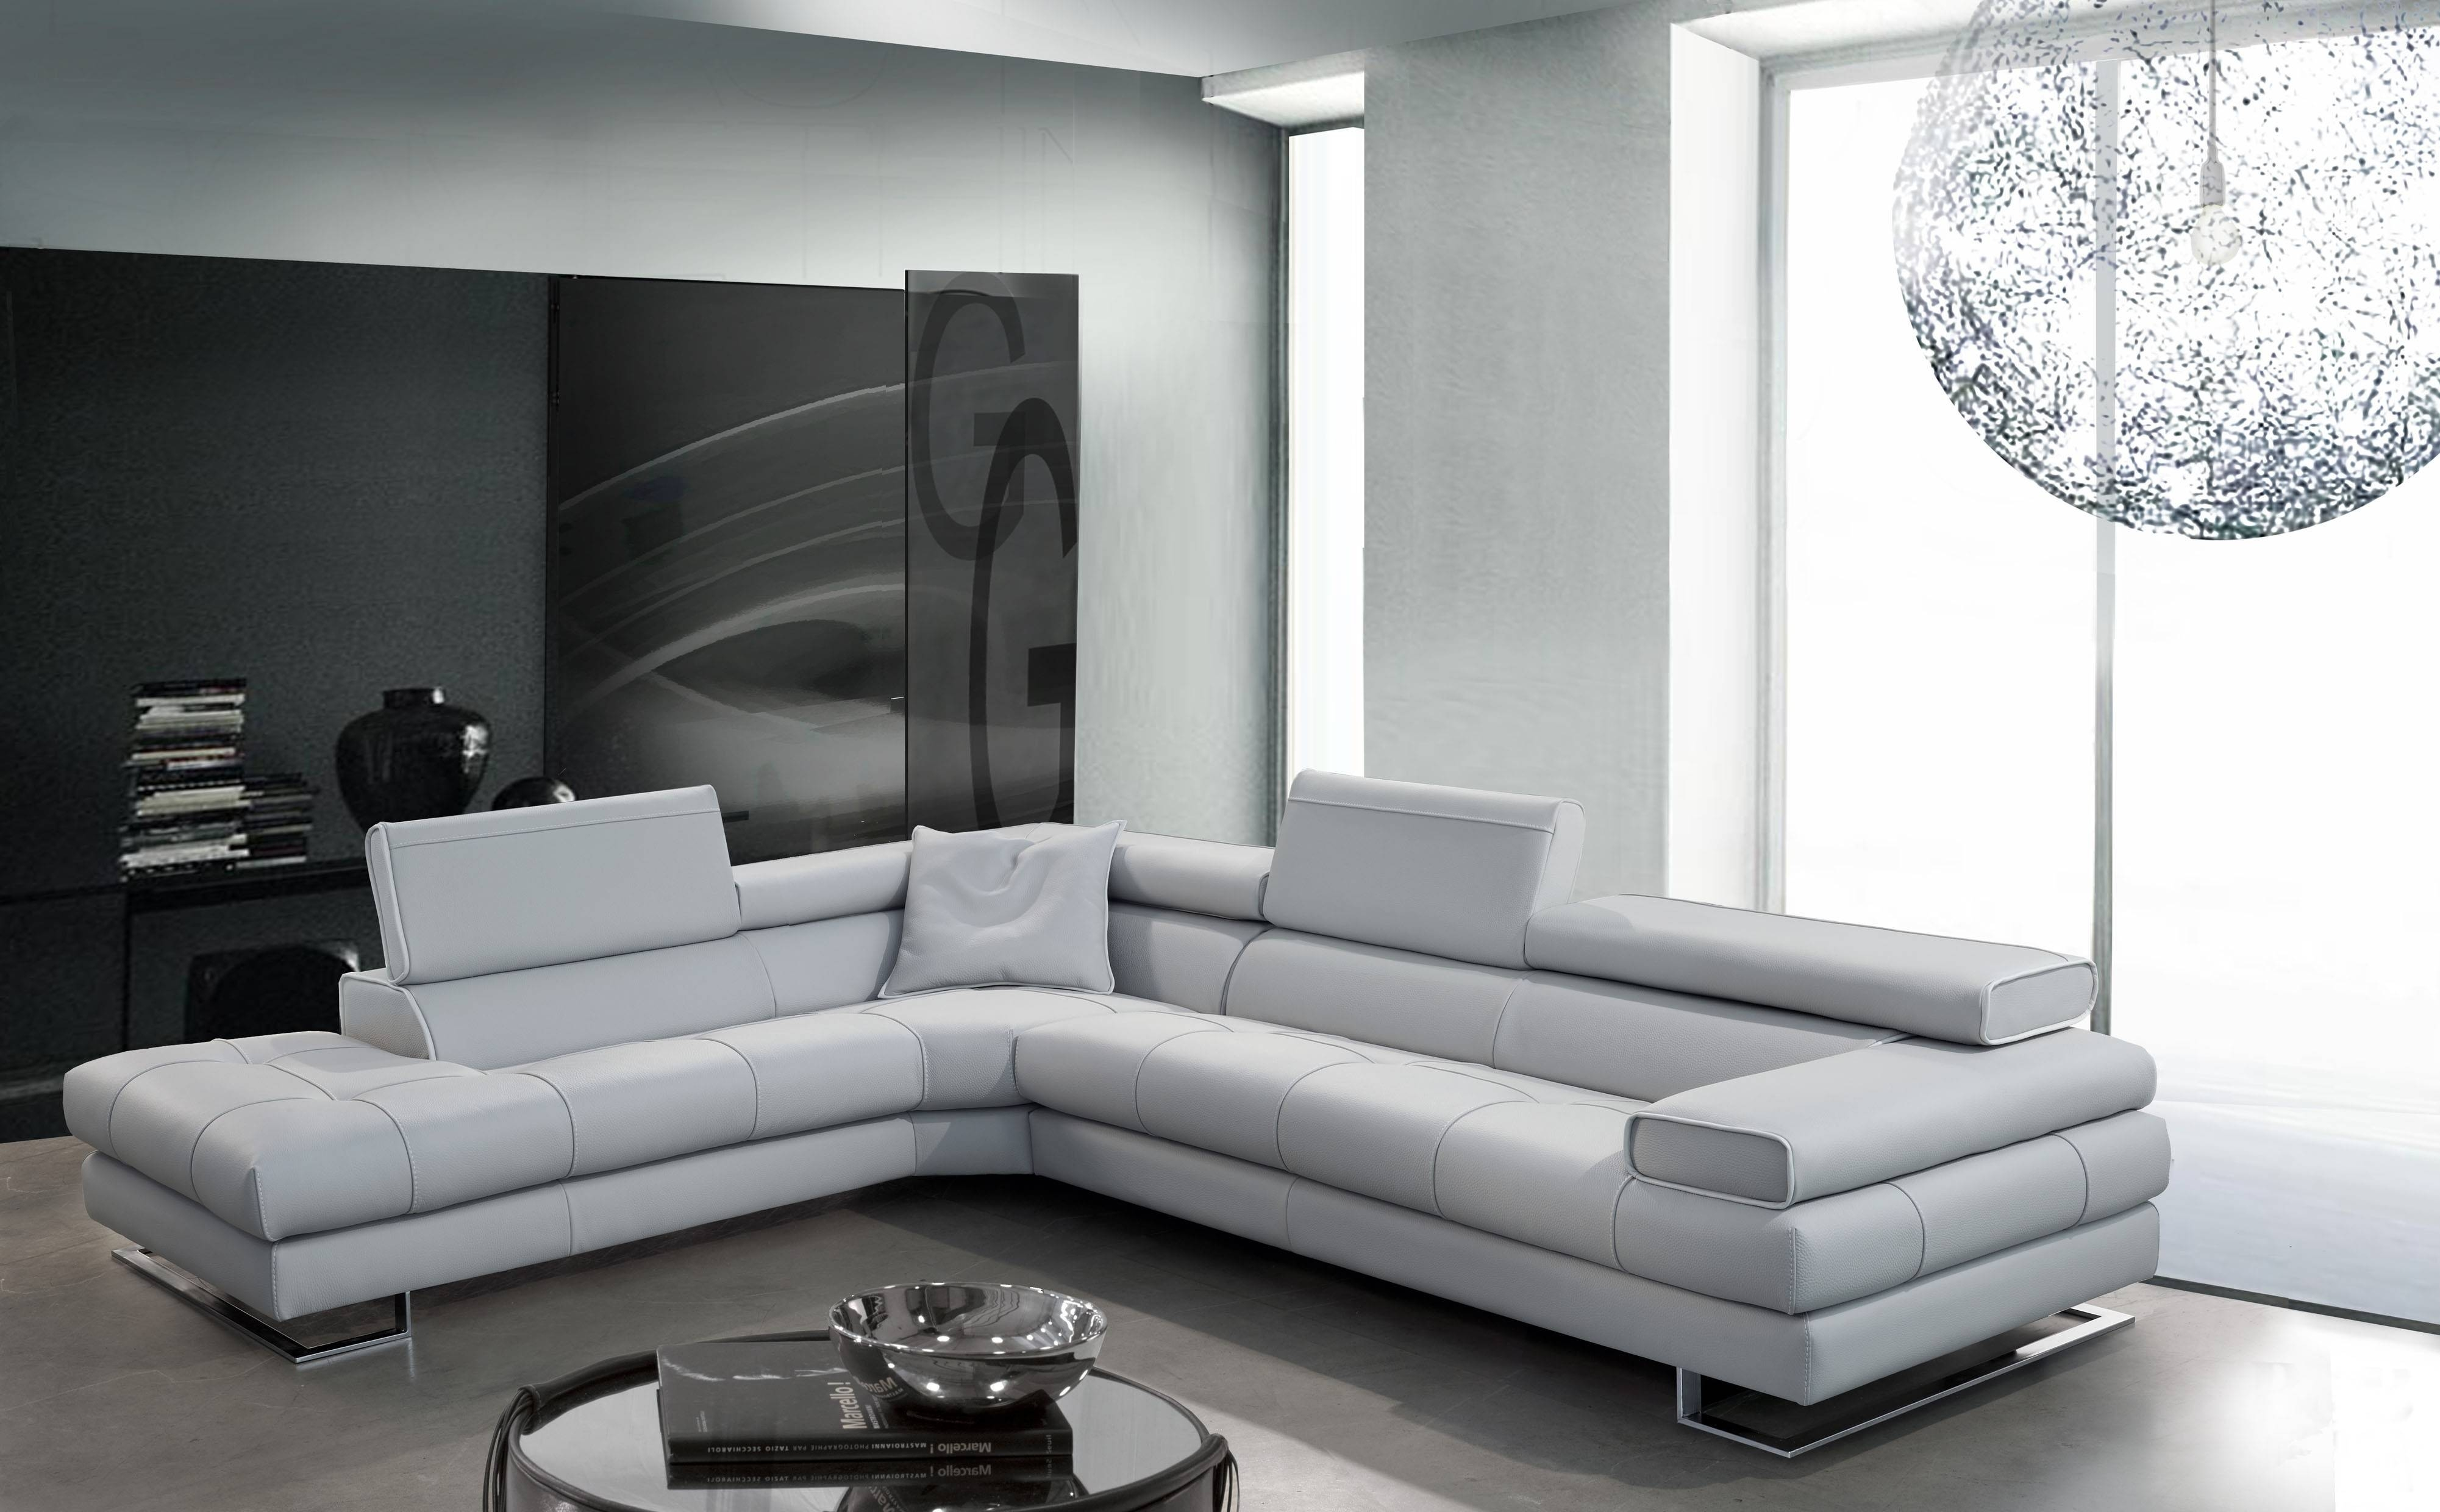 Interior: Stunning Micro Cheap Leather Sectionals For Living Room in Black Sectional Sofa for Cheap (Image 12 of 30)